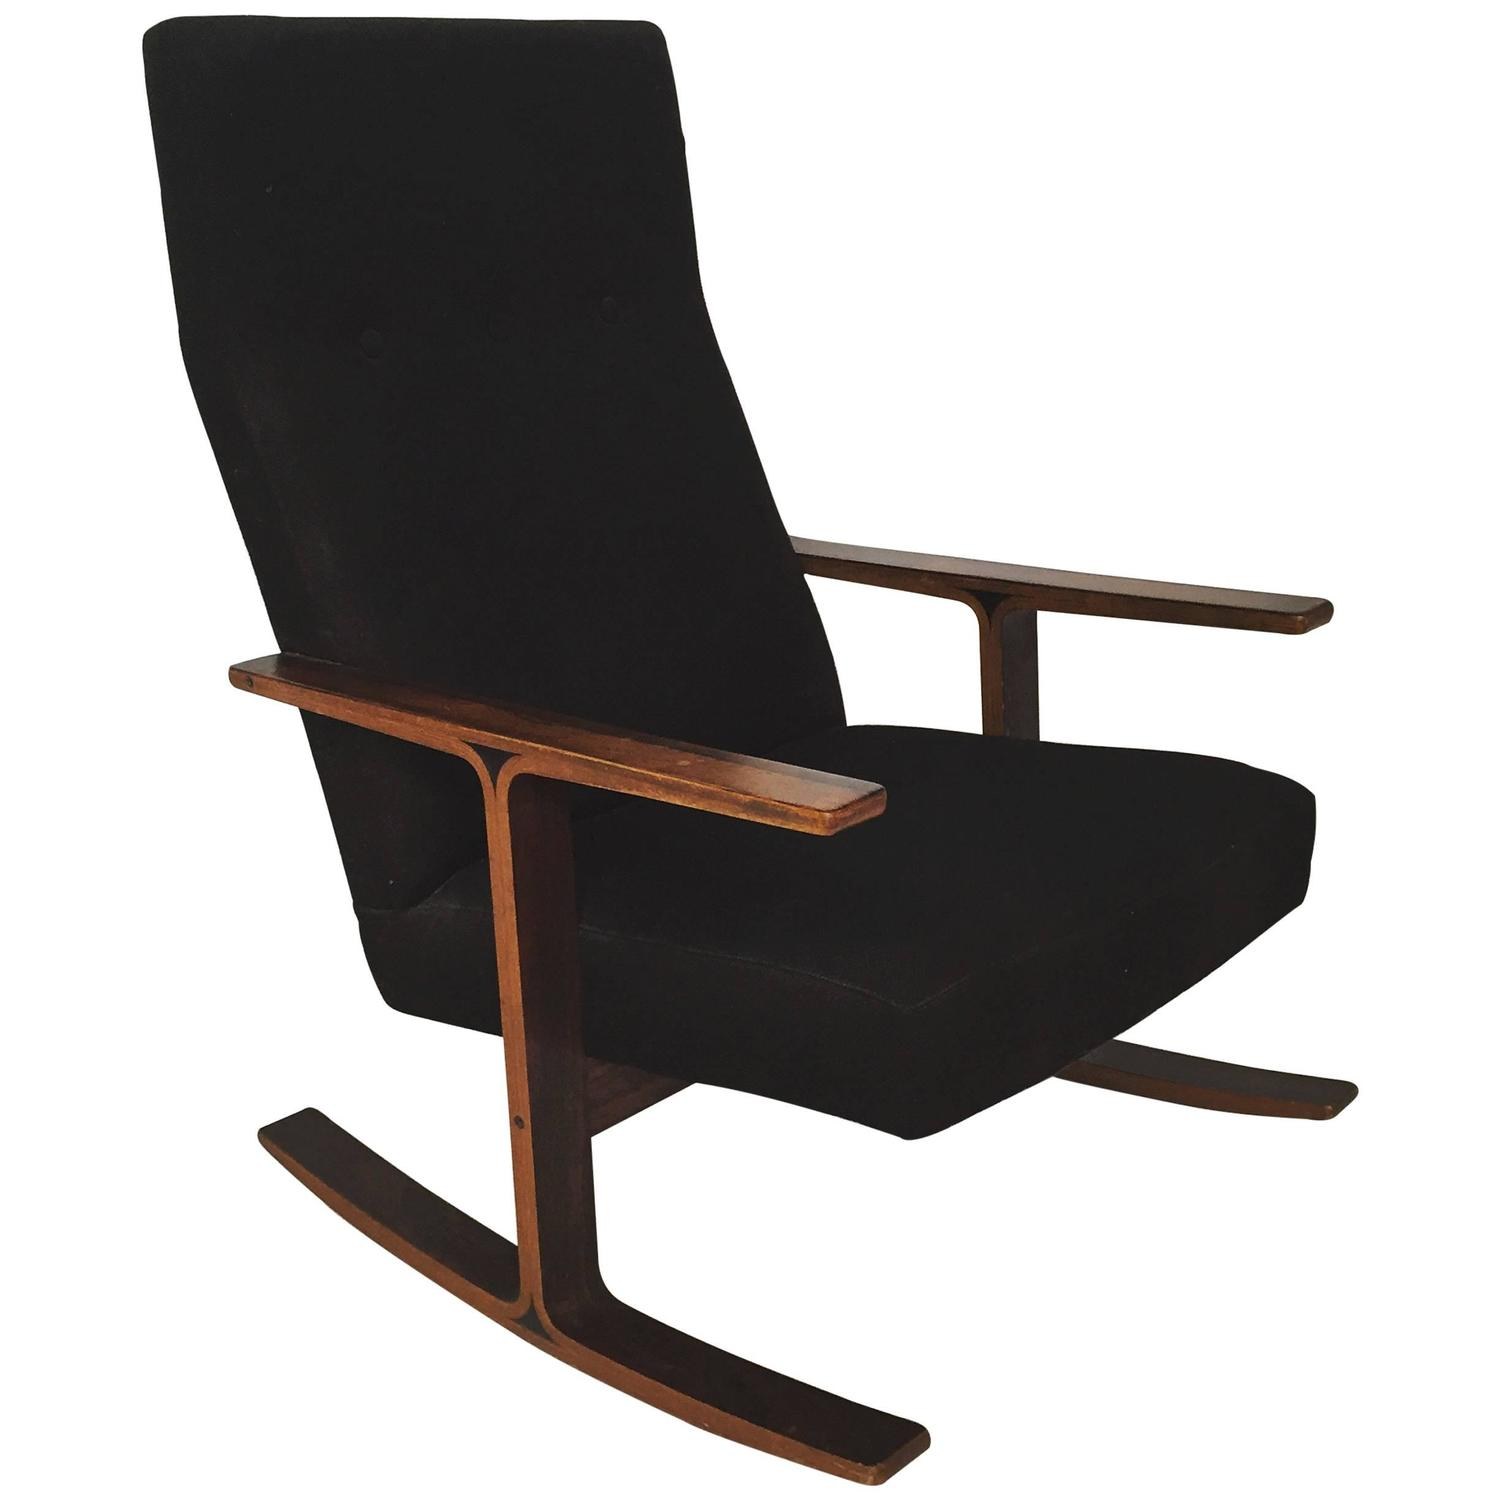 Modern Rosewood Rocking Chair For Sale at 1stdibs